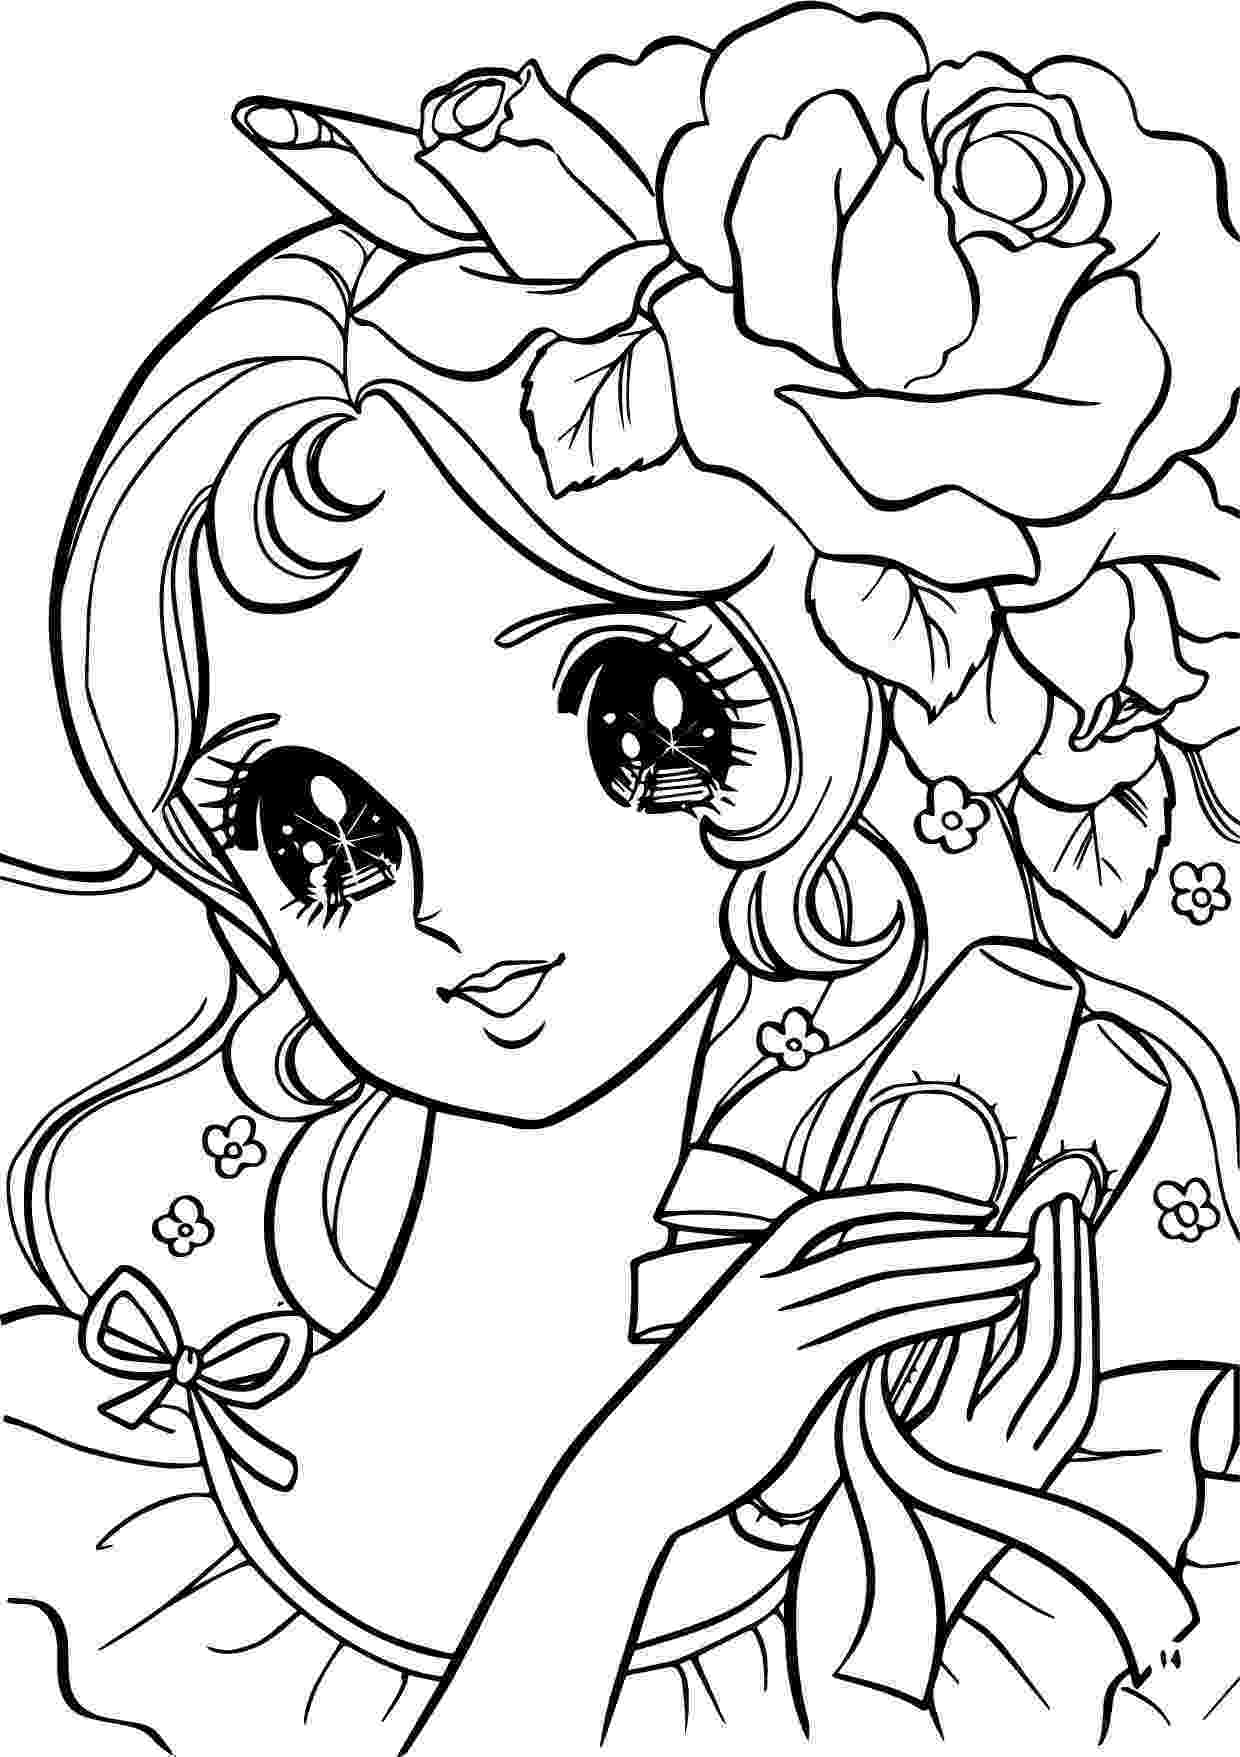 coloring pages for girls flowers flower girl cute line drawing desenhos para pintar pages flowers coloring for girls